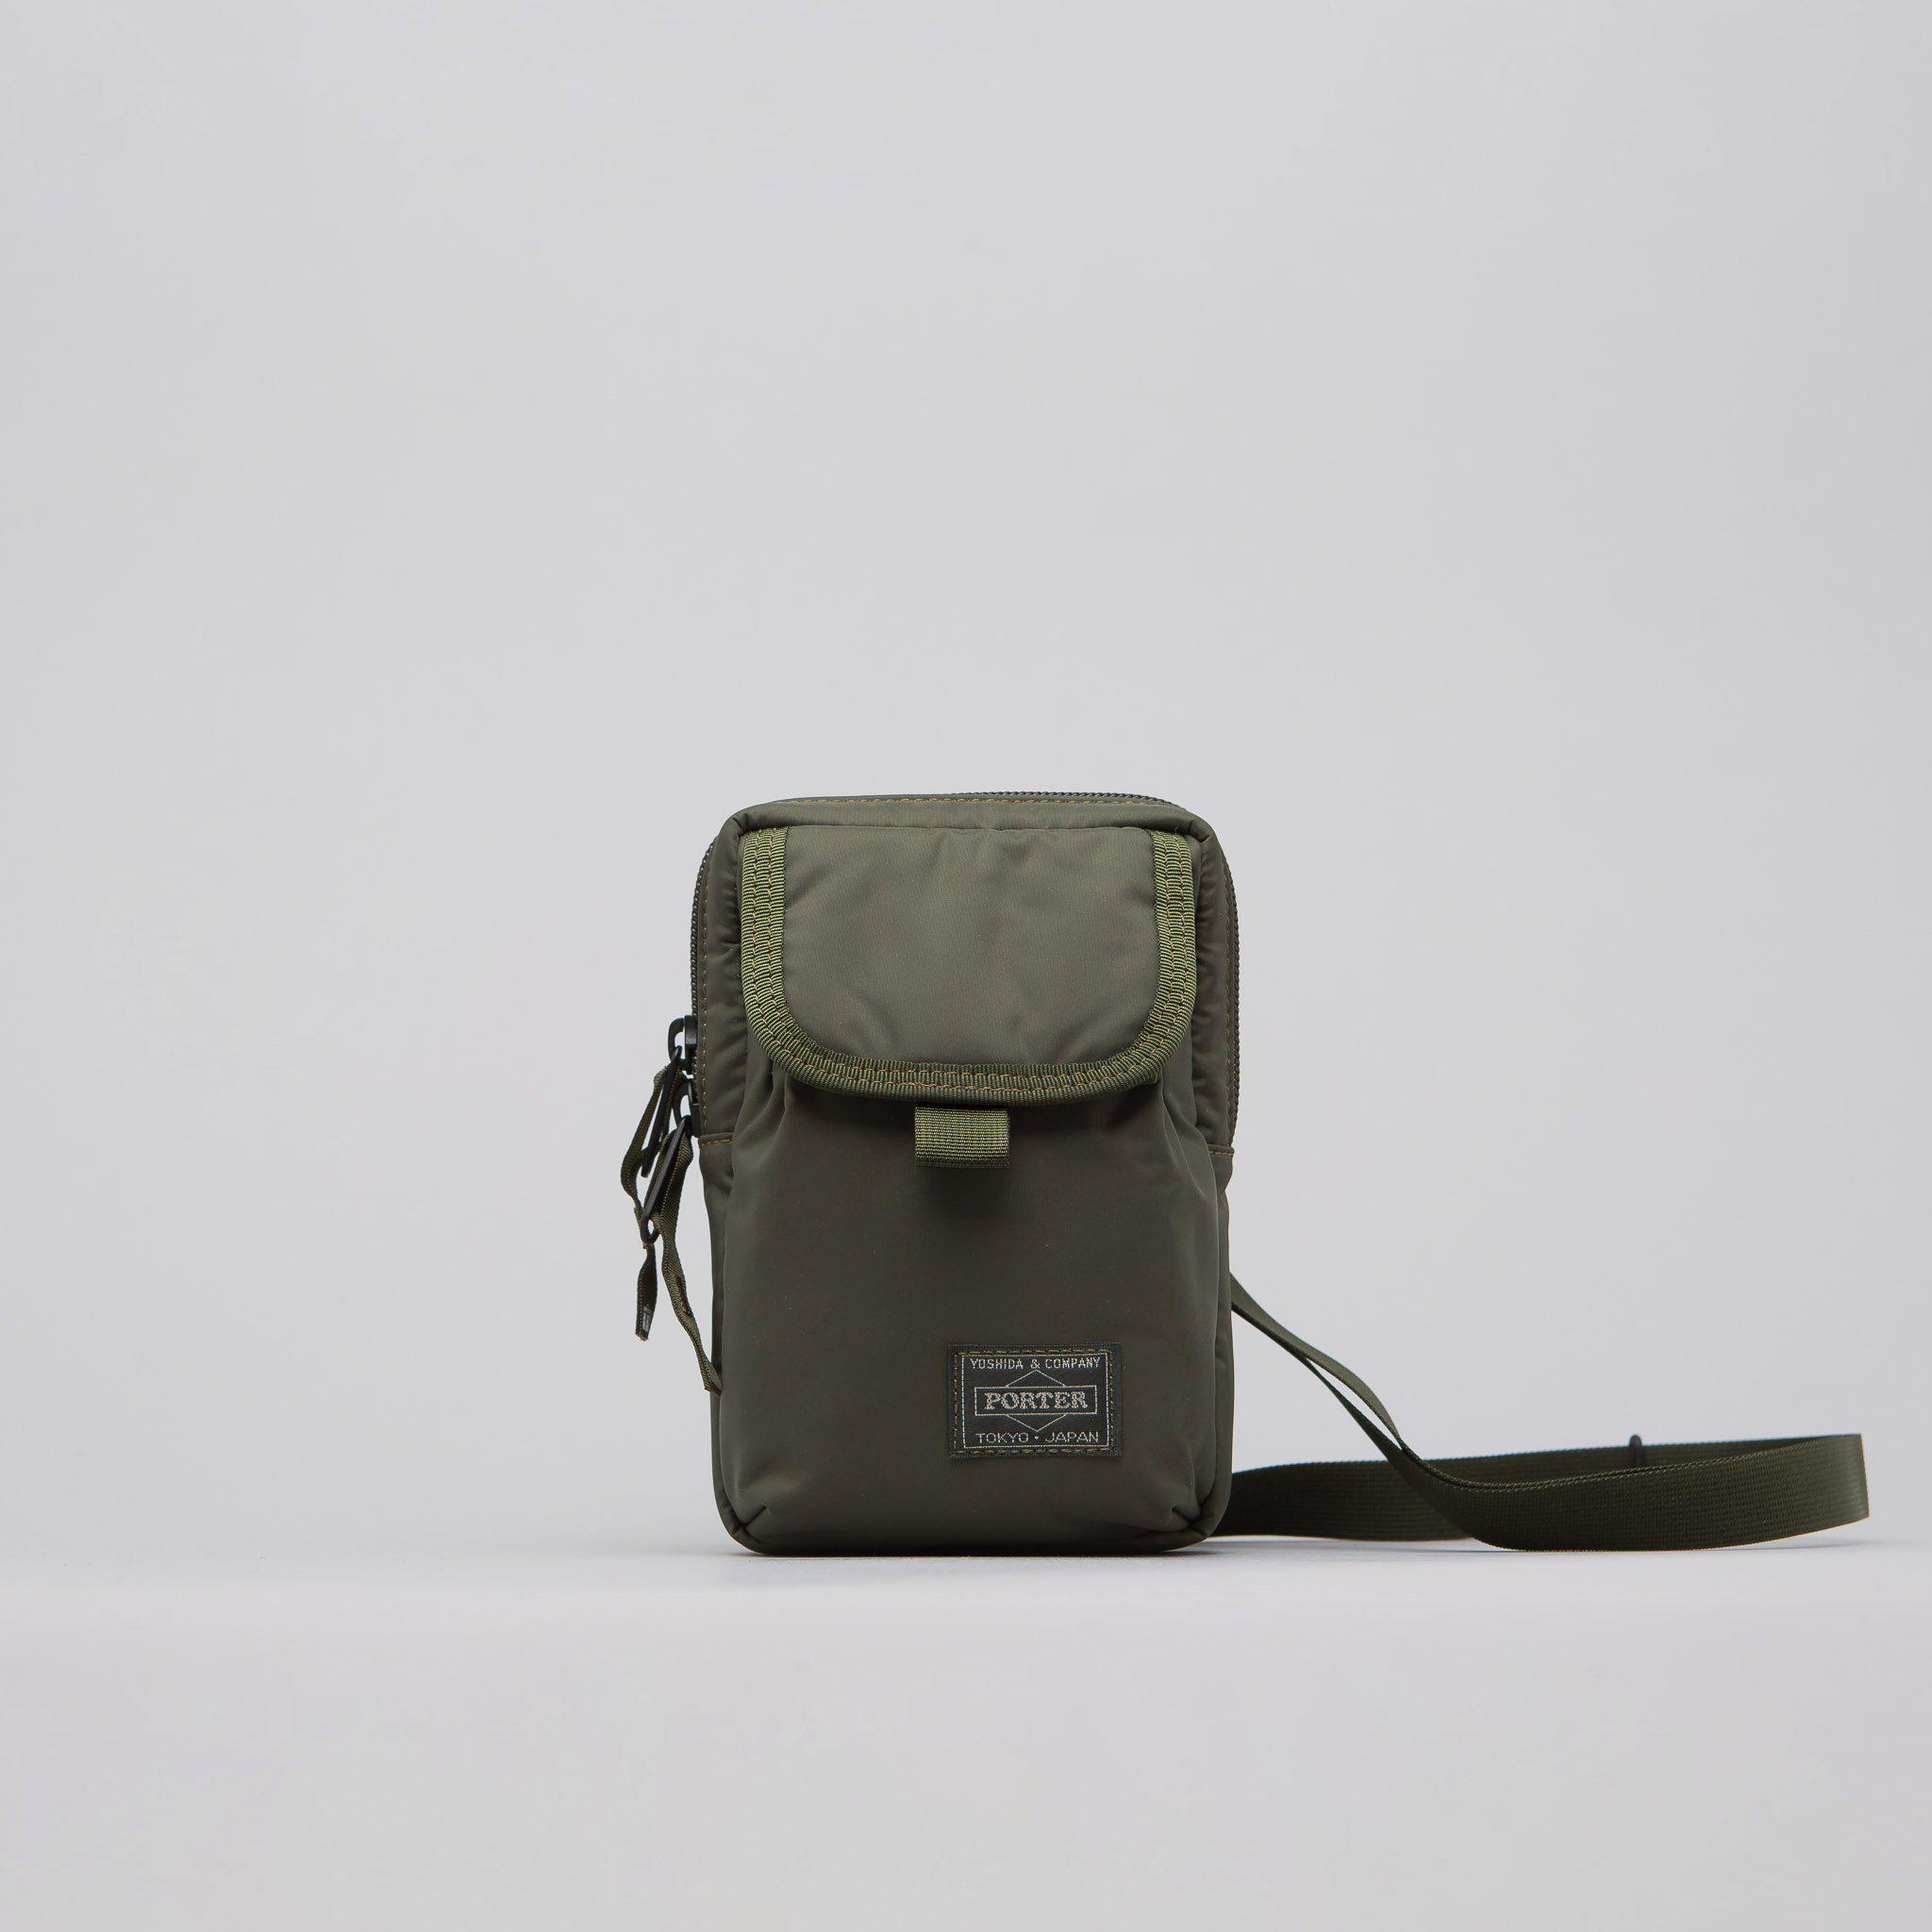 Lyst - Head Porter Shoulder Pouch In Olive Drab in Green for Men c84c0f2c4b3bd